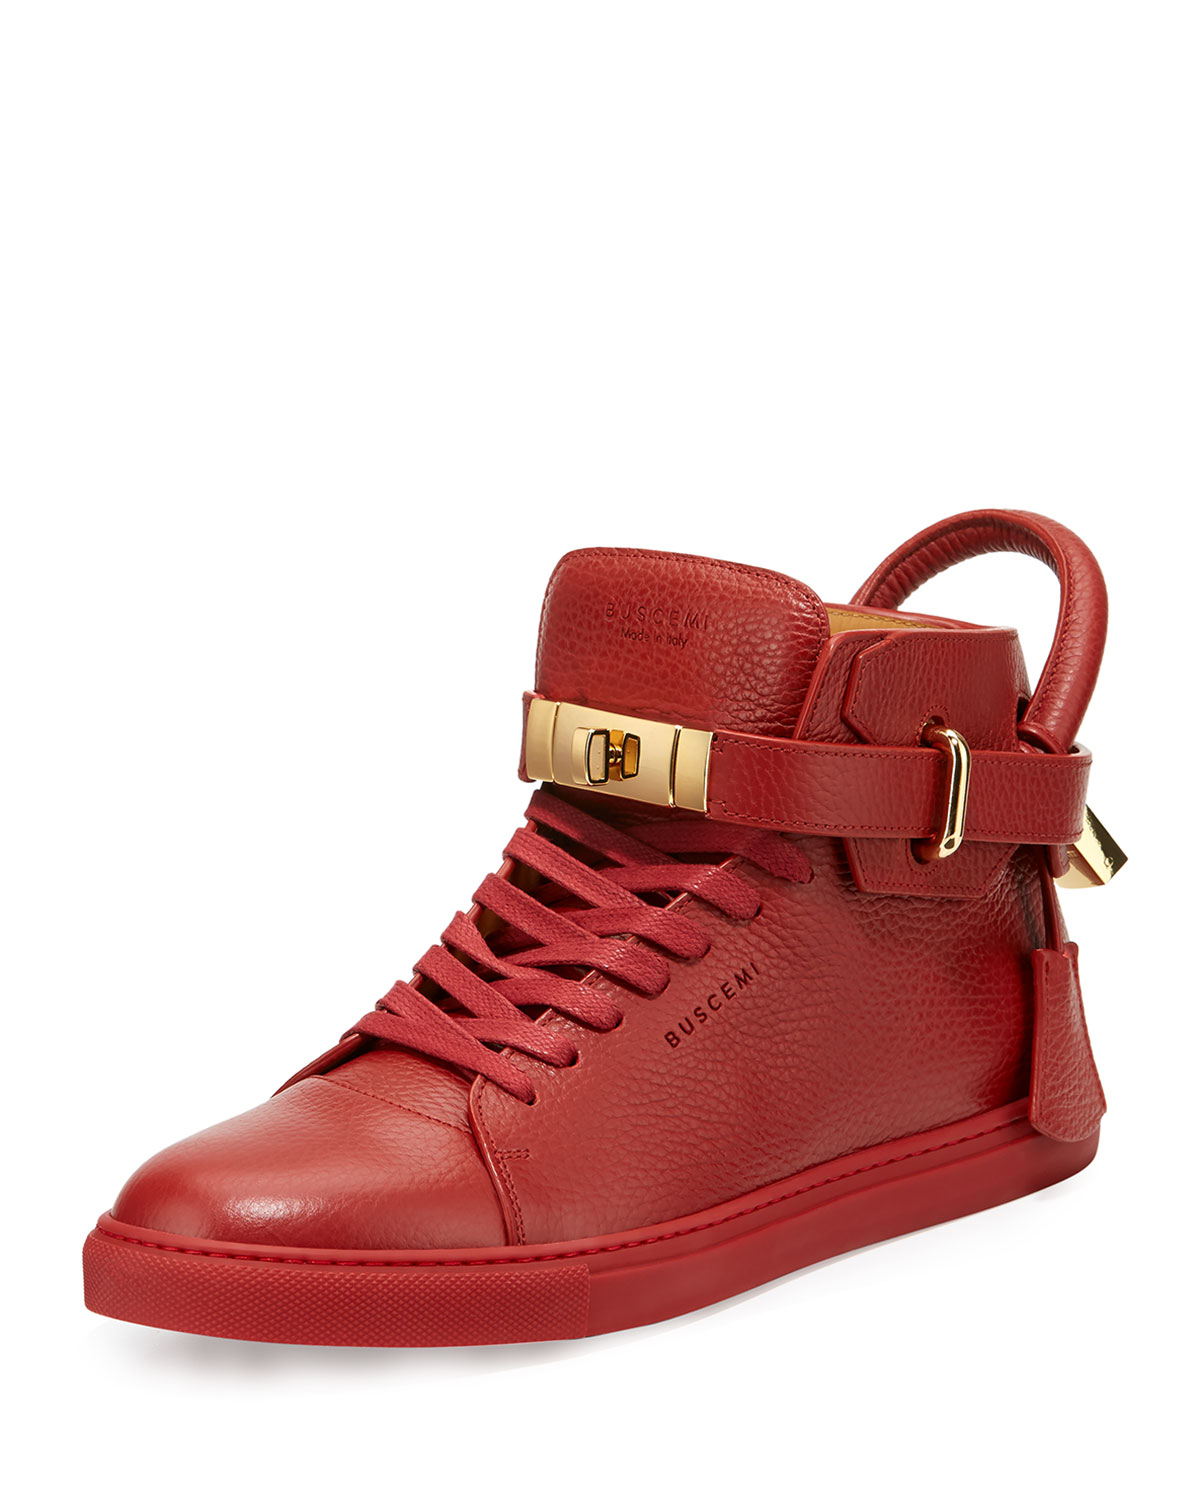 Top Neiman High Buscemi Men's Sneakers 100mm Marcus Red Yv74tq1w